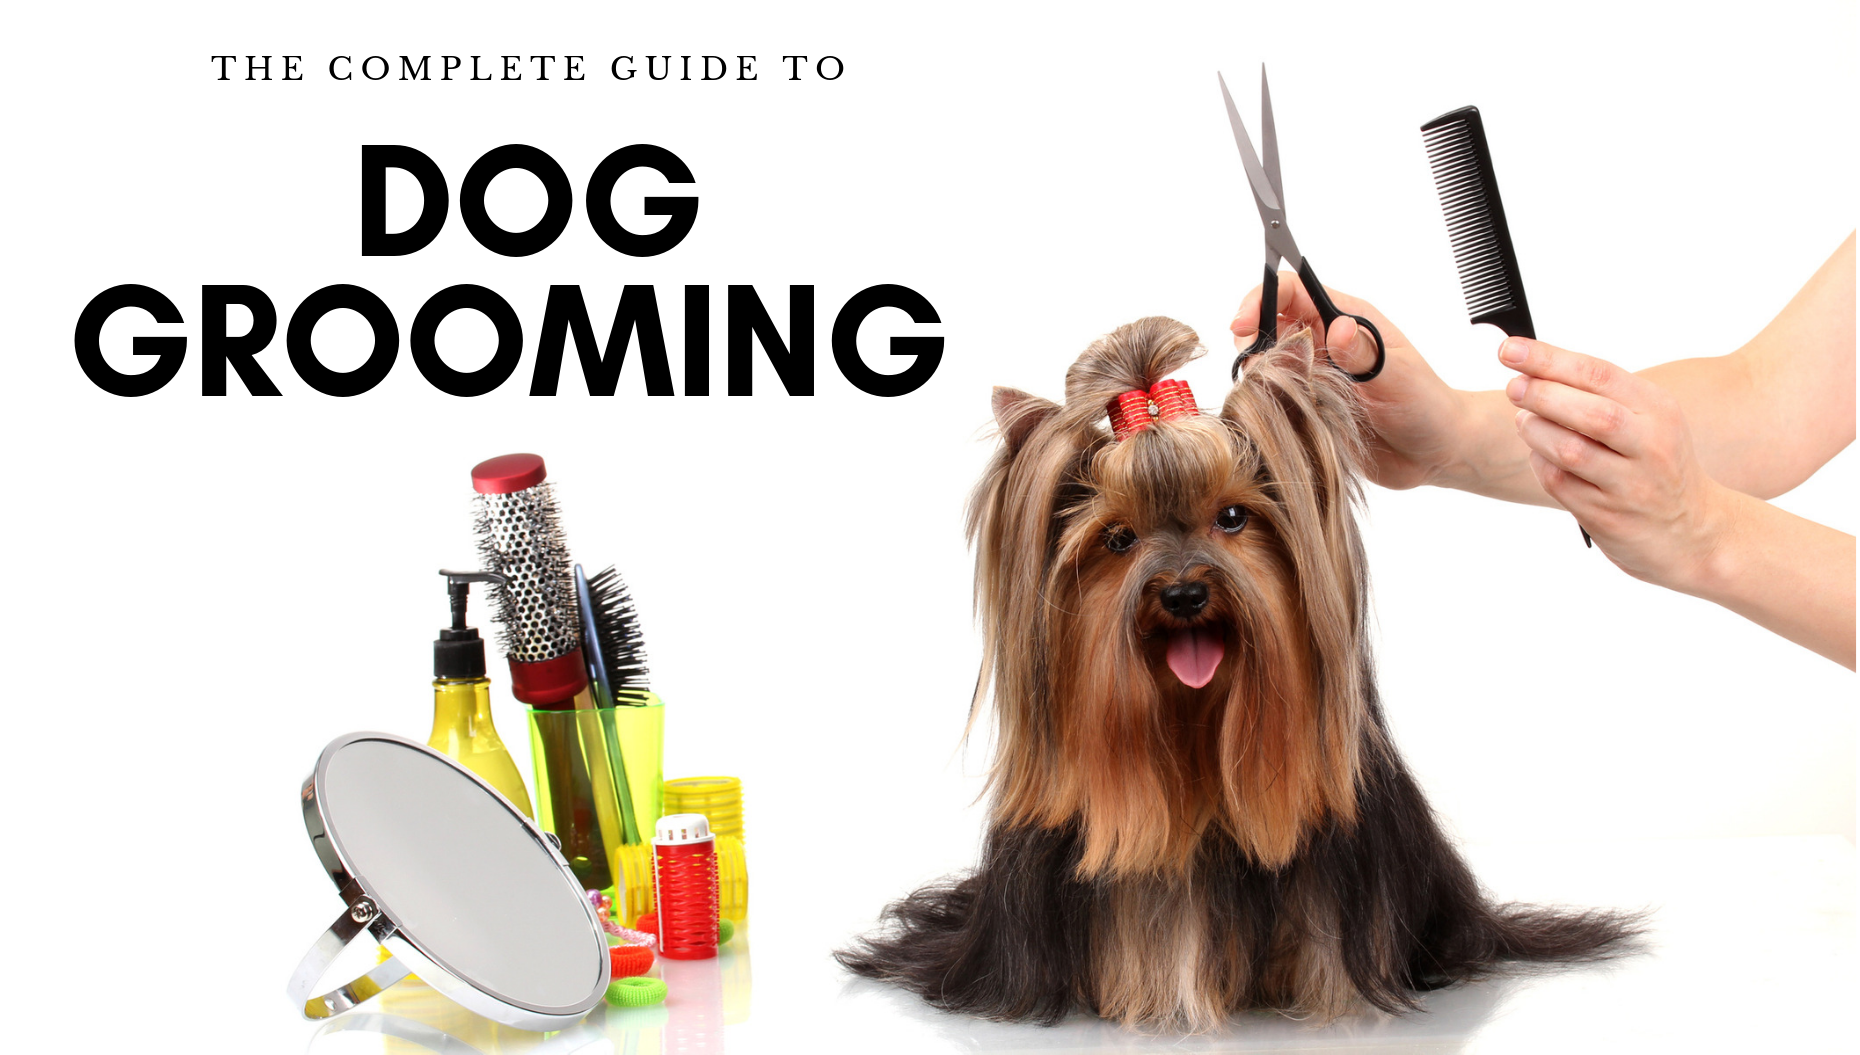 The Complete Guide to Dog Grooming (DIY + Video)